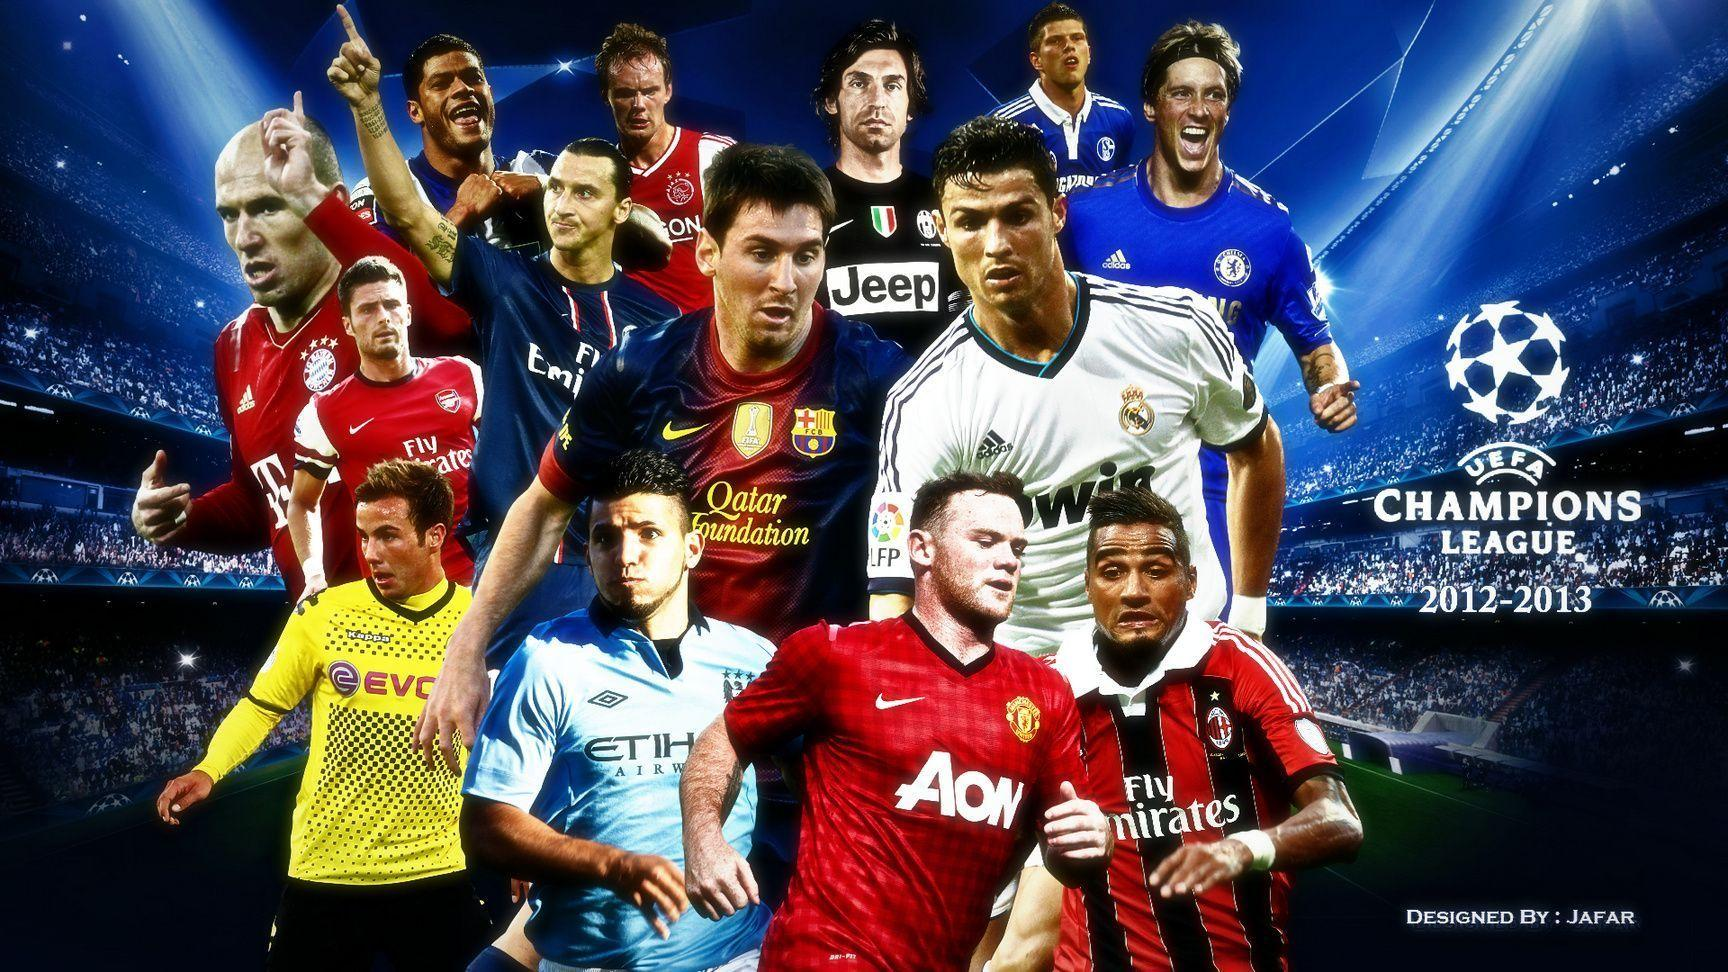 A Collections Team UEFA CHAMPIONS LEAGUE #3841 Wallpaper ...